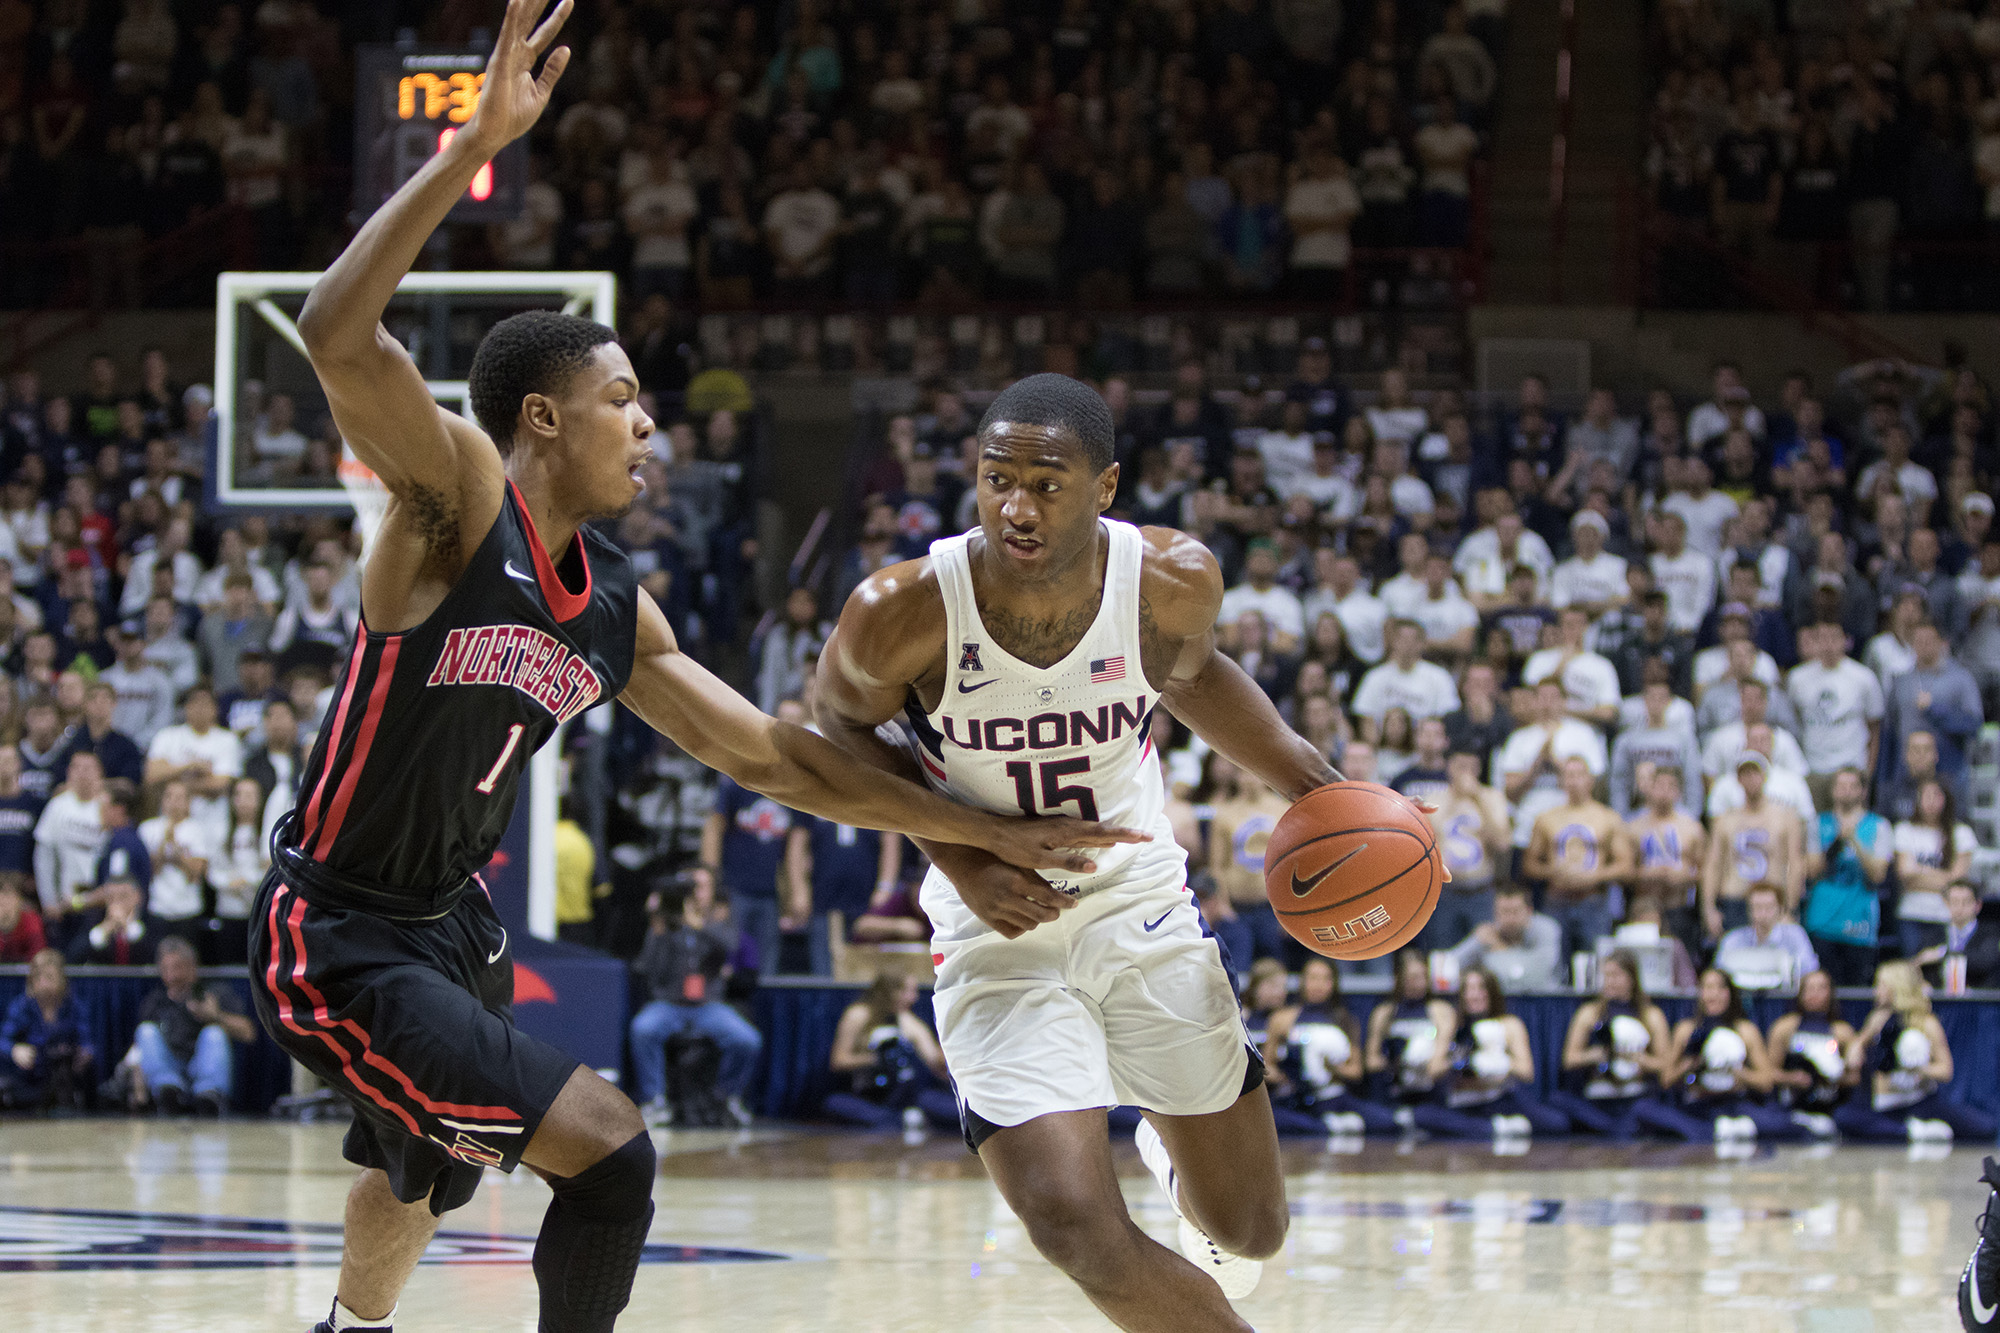 Pictured: Rodney Purvis, number 15 against Northeastern opponent. The UConn mens' basketball team fell to Northeastern 64-61 on Monday Nov. 14, 2016 at Gampel Pavilion in Storrs. Terry Larrier scored 17 points for the Huskies. (Jackson Haigis/ The Daily Campus)